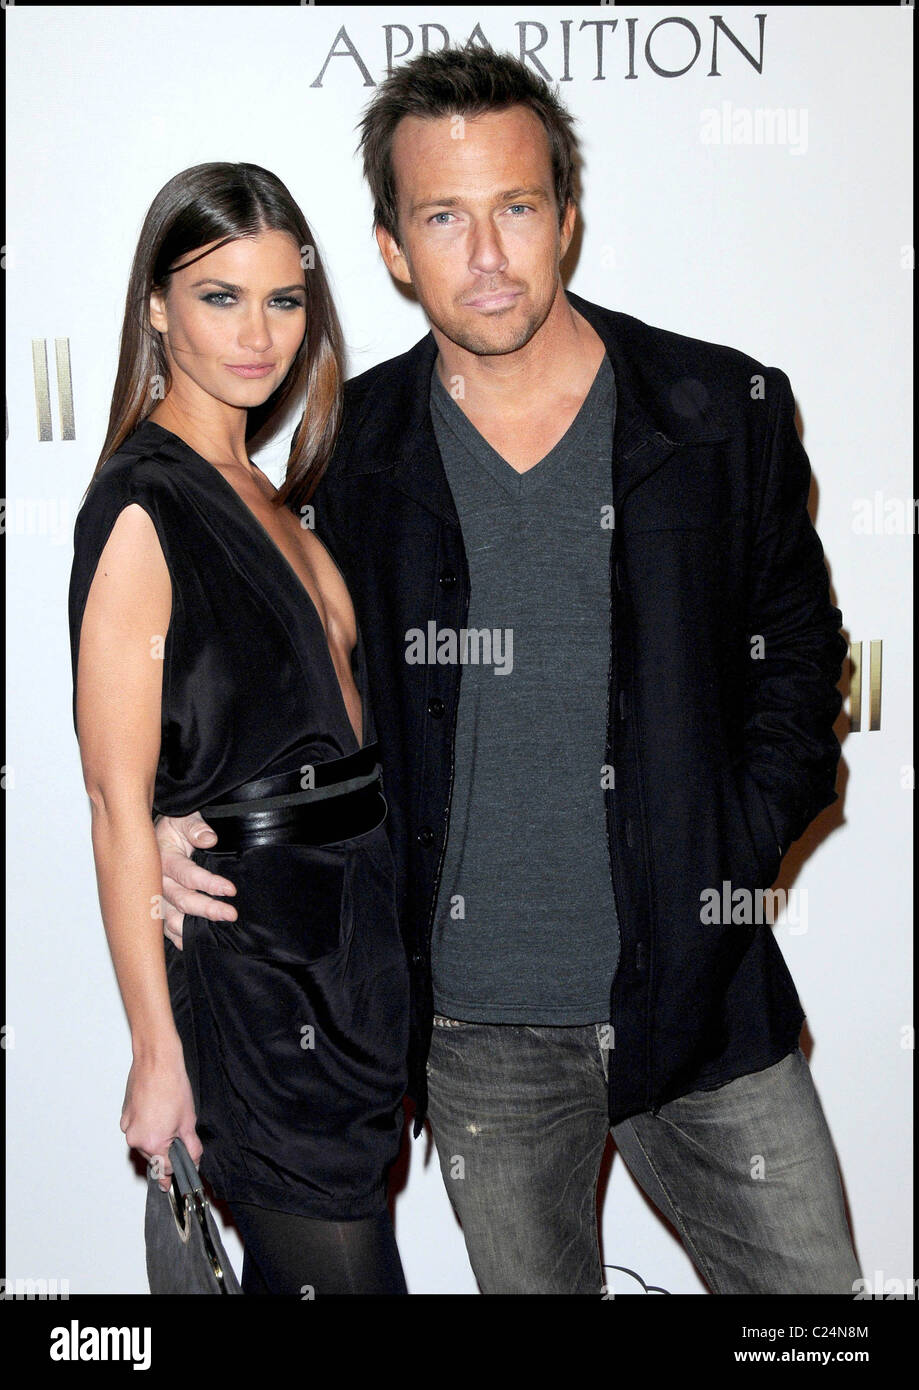 Sean patrick flanery dating history